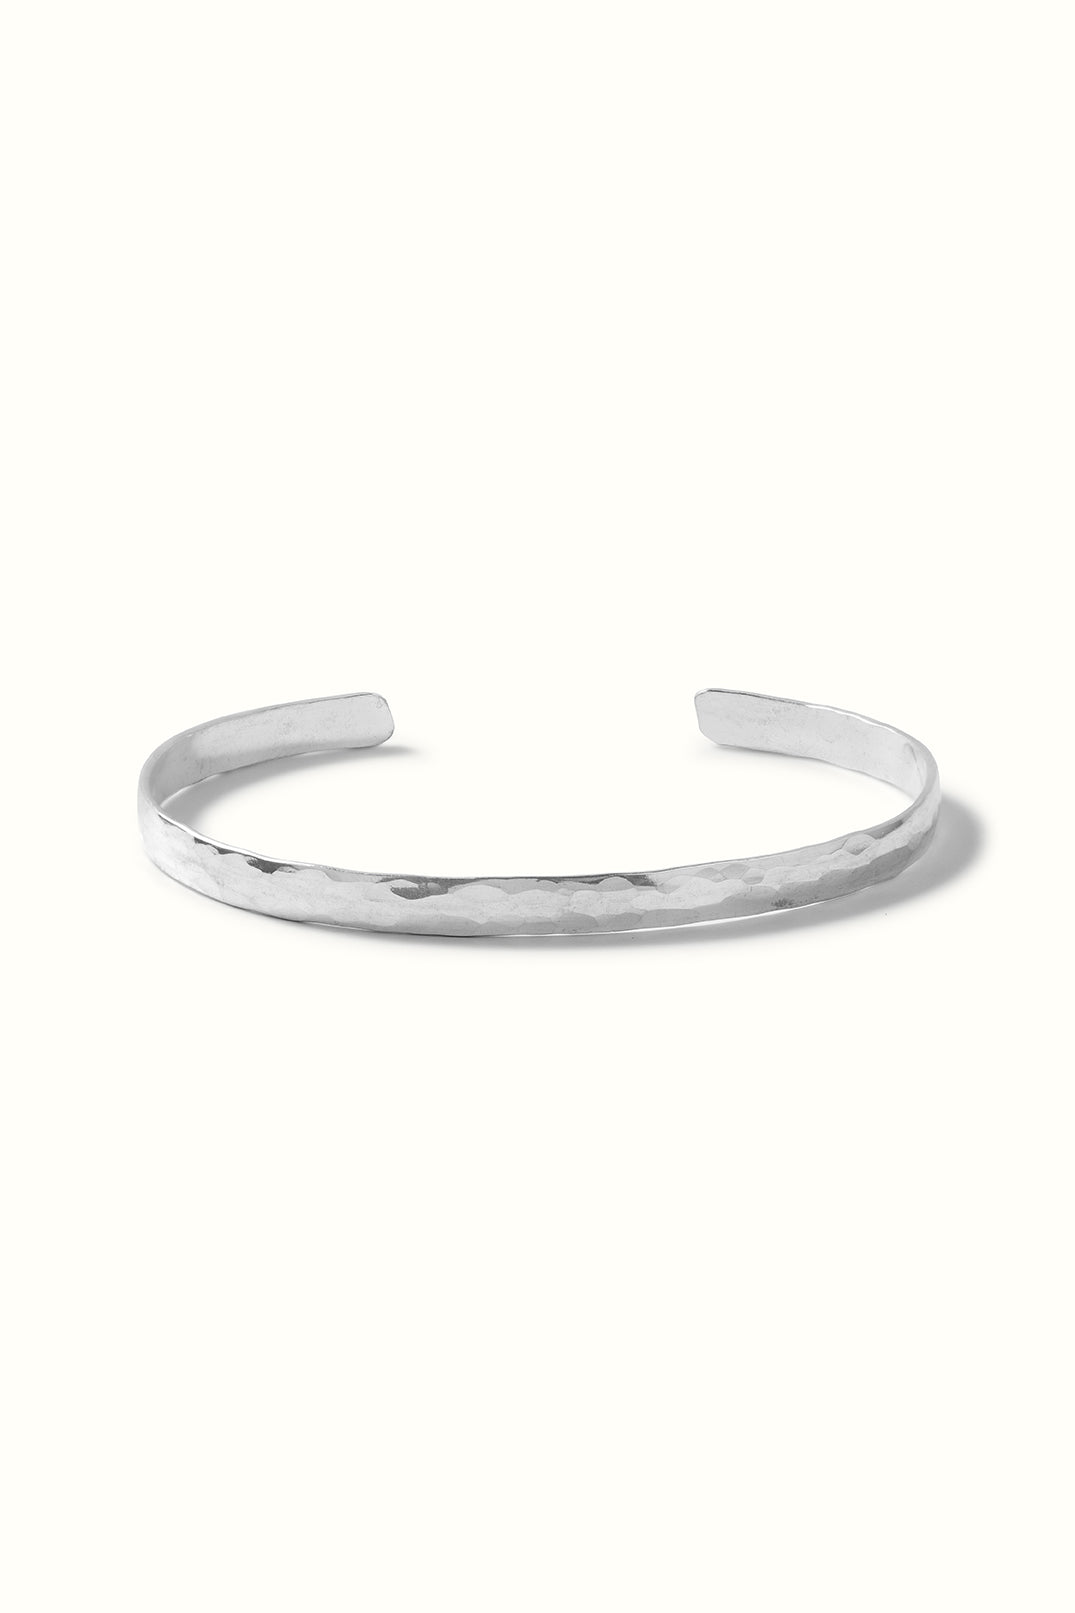 a sterling silver hammered cuff bracelet lying on a white surface